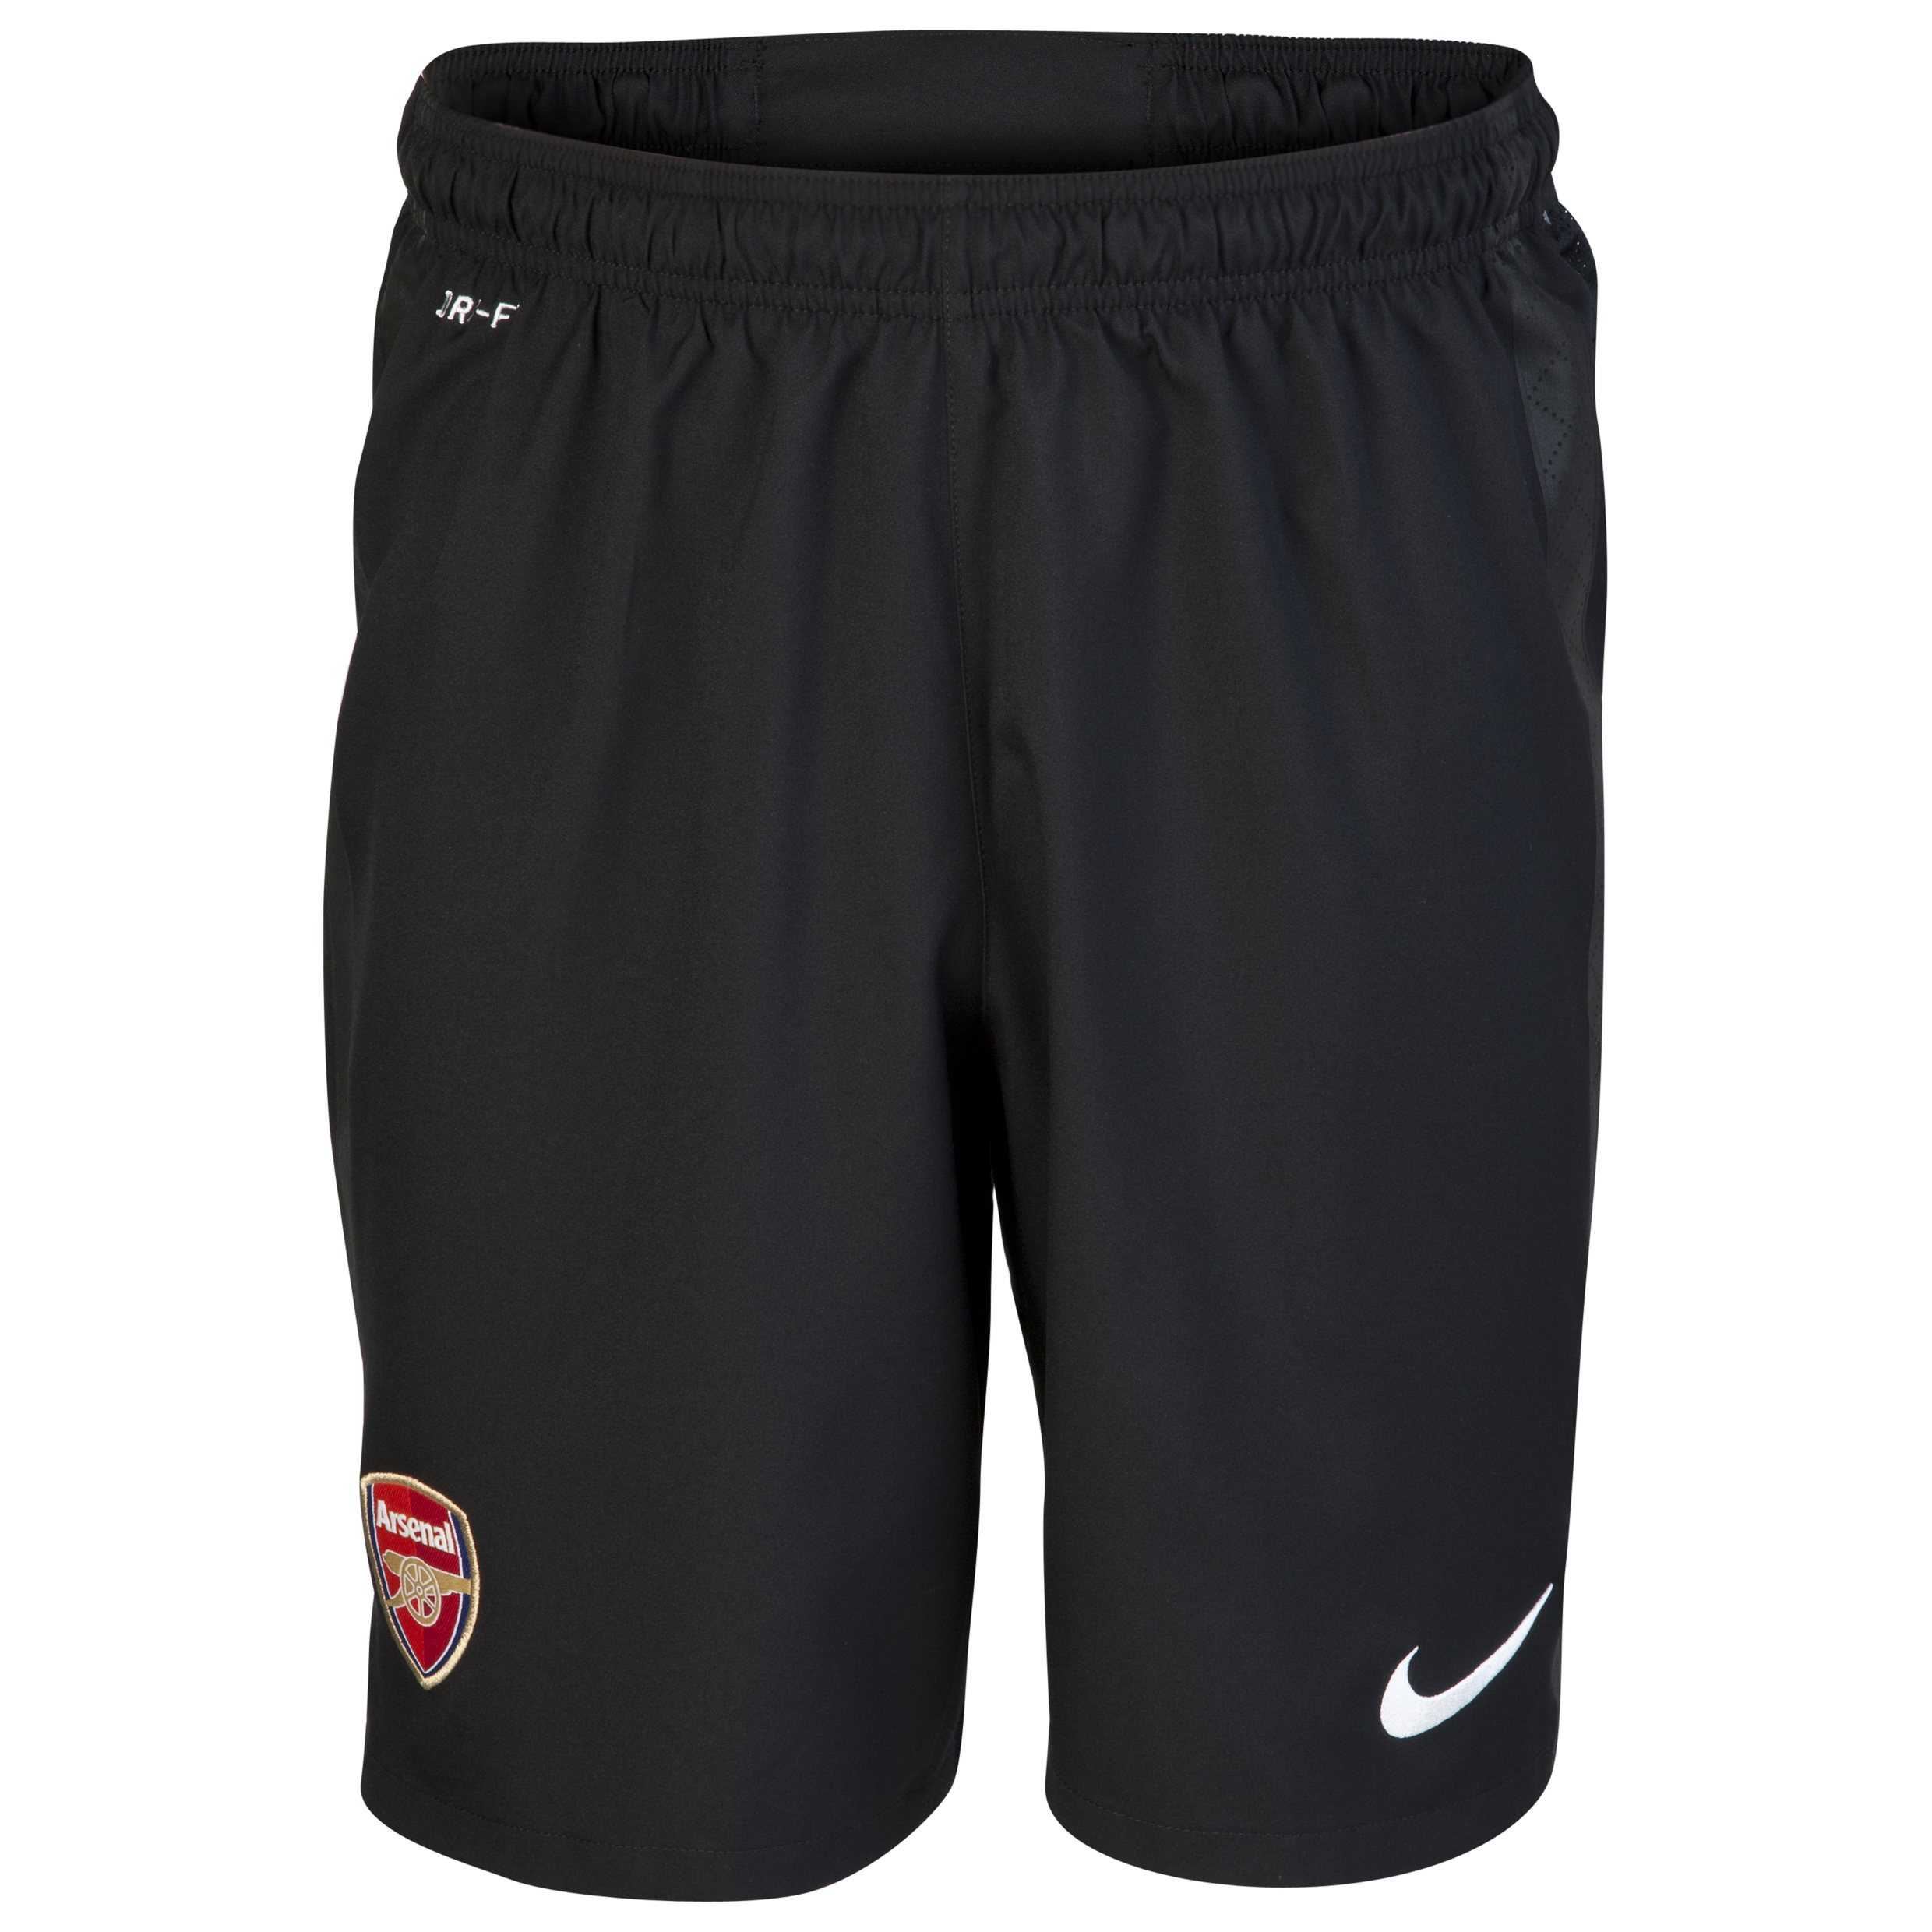 Arsenal Away Shorts 2012/13